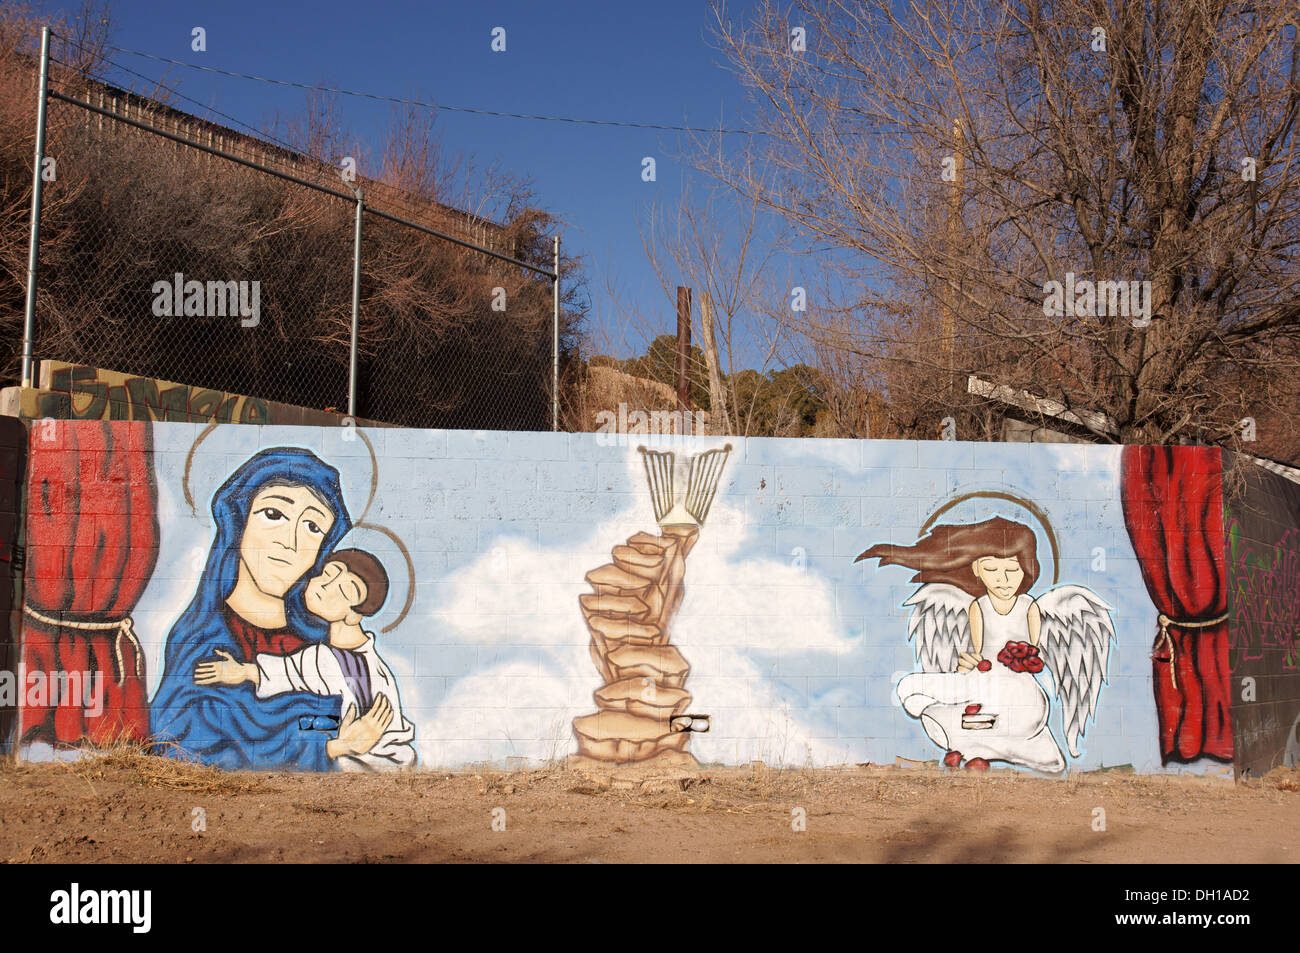 L'art mural ojito llano new mexico nm art artisanat artisanat aptitude expertise créativité imagination Photo Stock